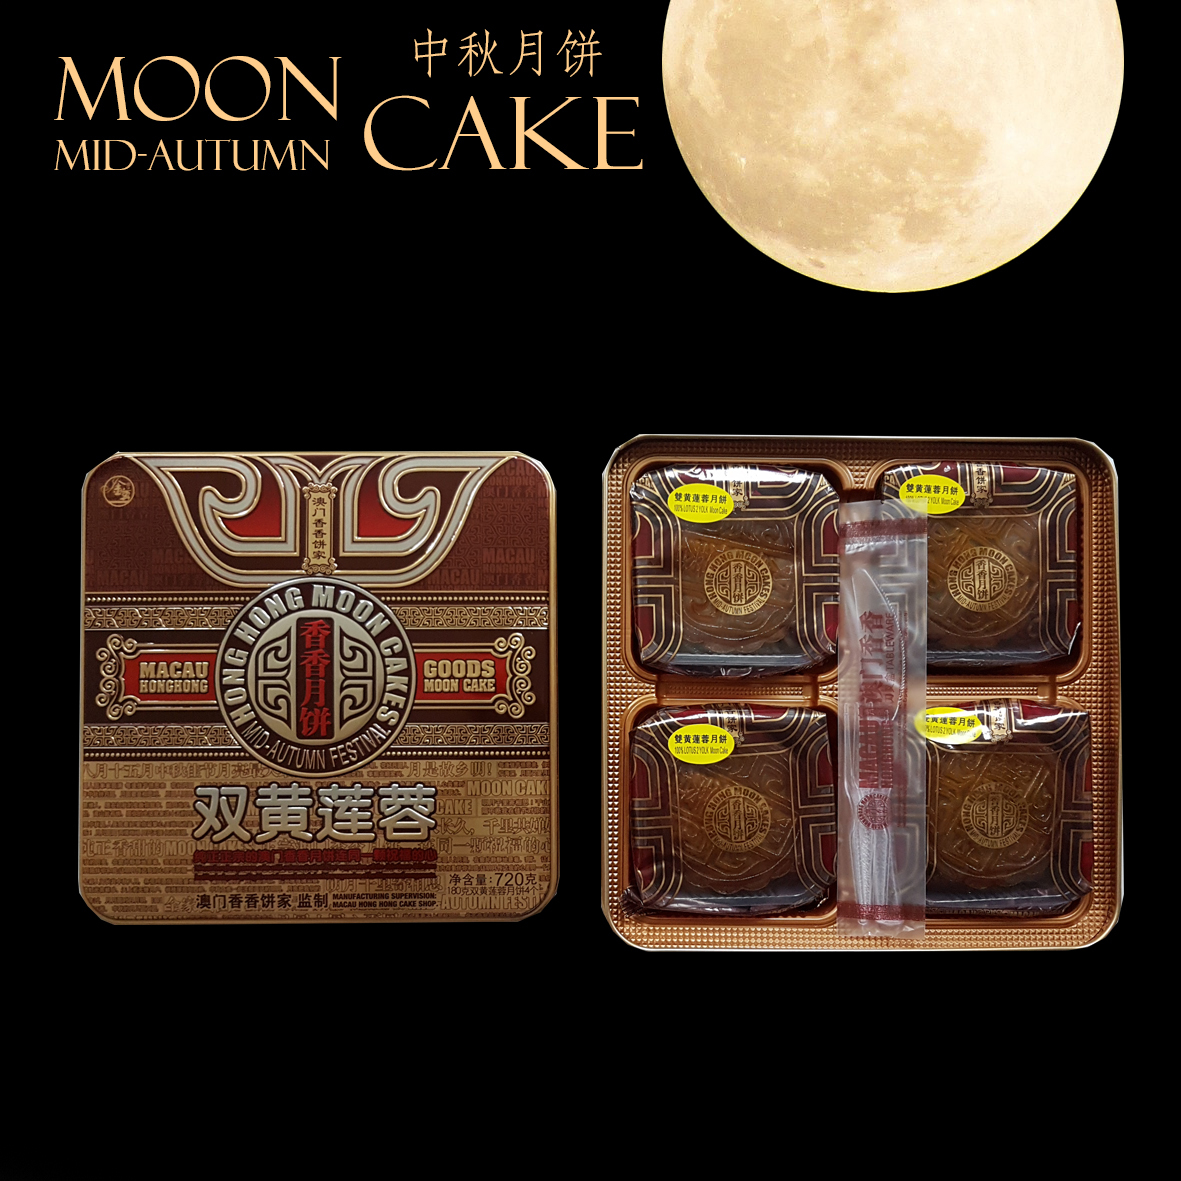 Kanpeki Macau Hong Hong Moon Cake Mid Autumn 100 percent lotus 2 yolk MoonCake.jpg